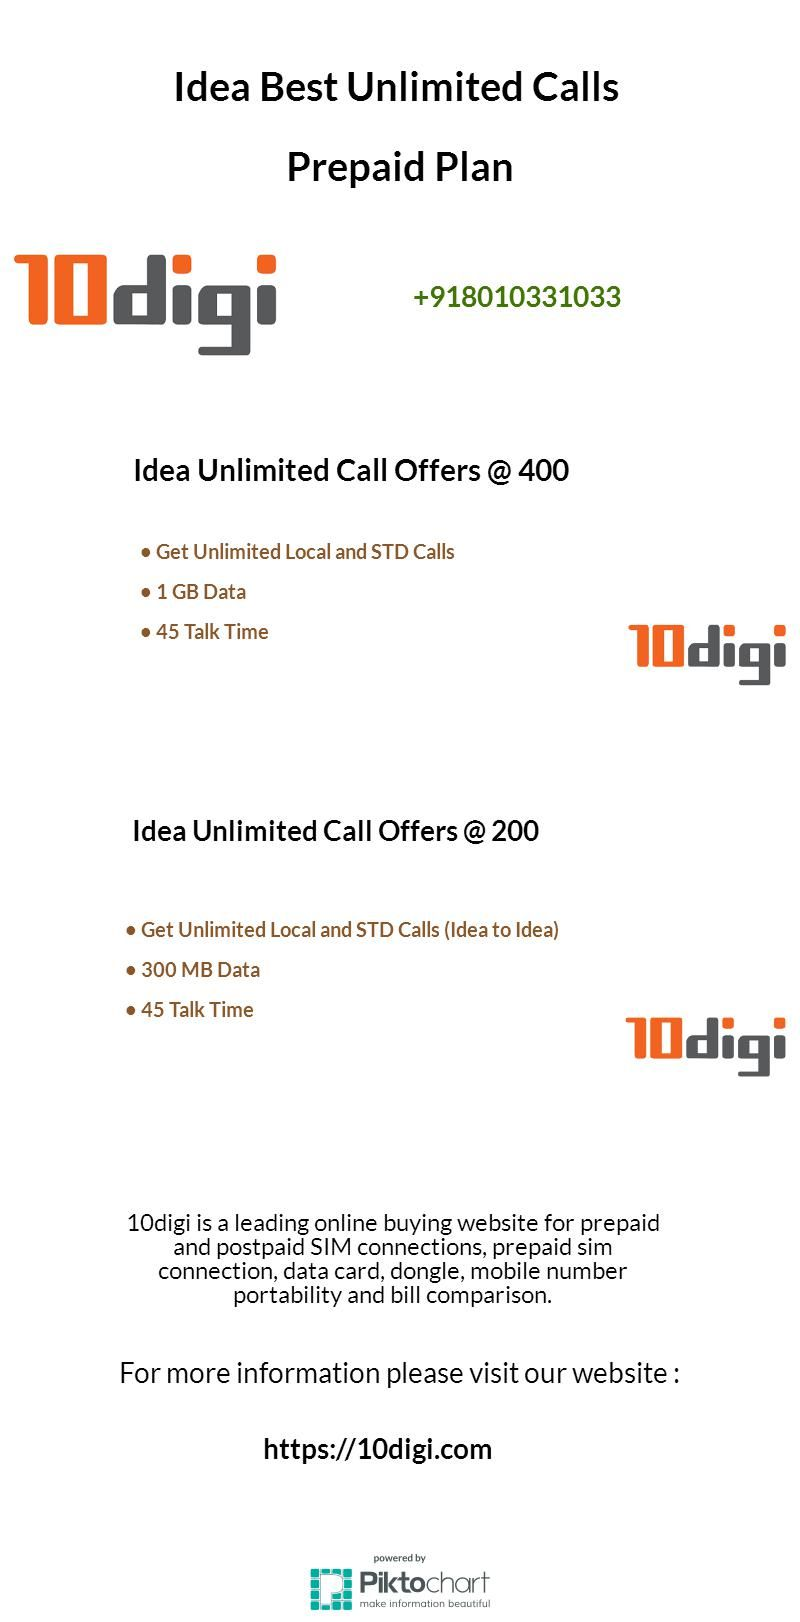 10 digi is a leading online buying website for prepaid and